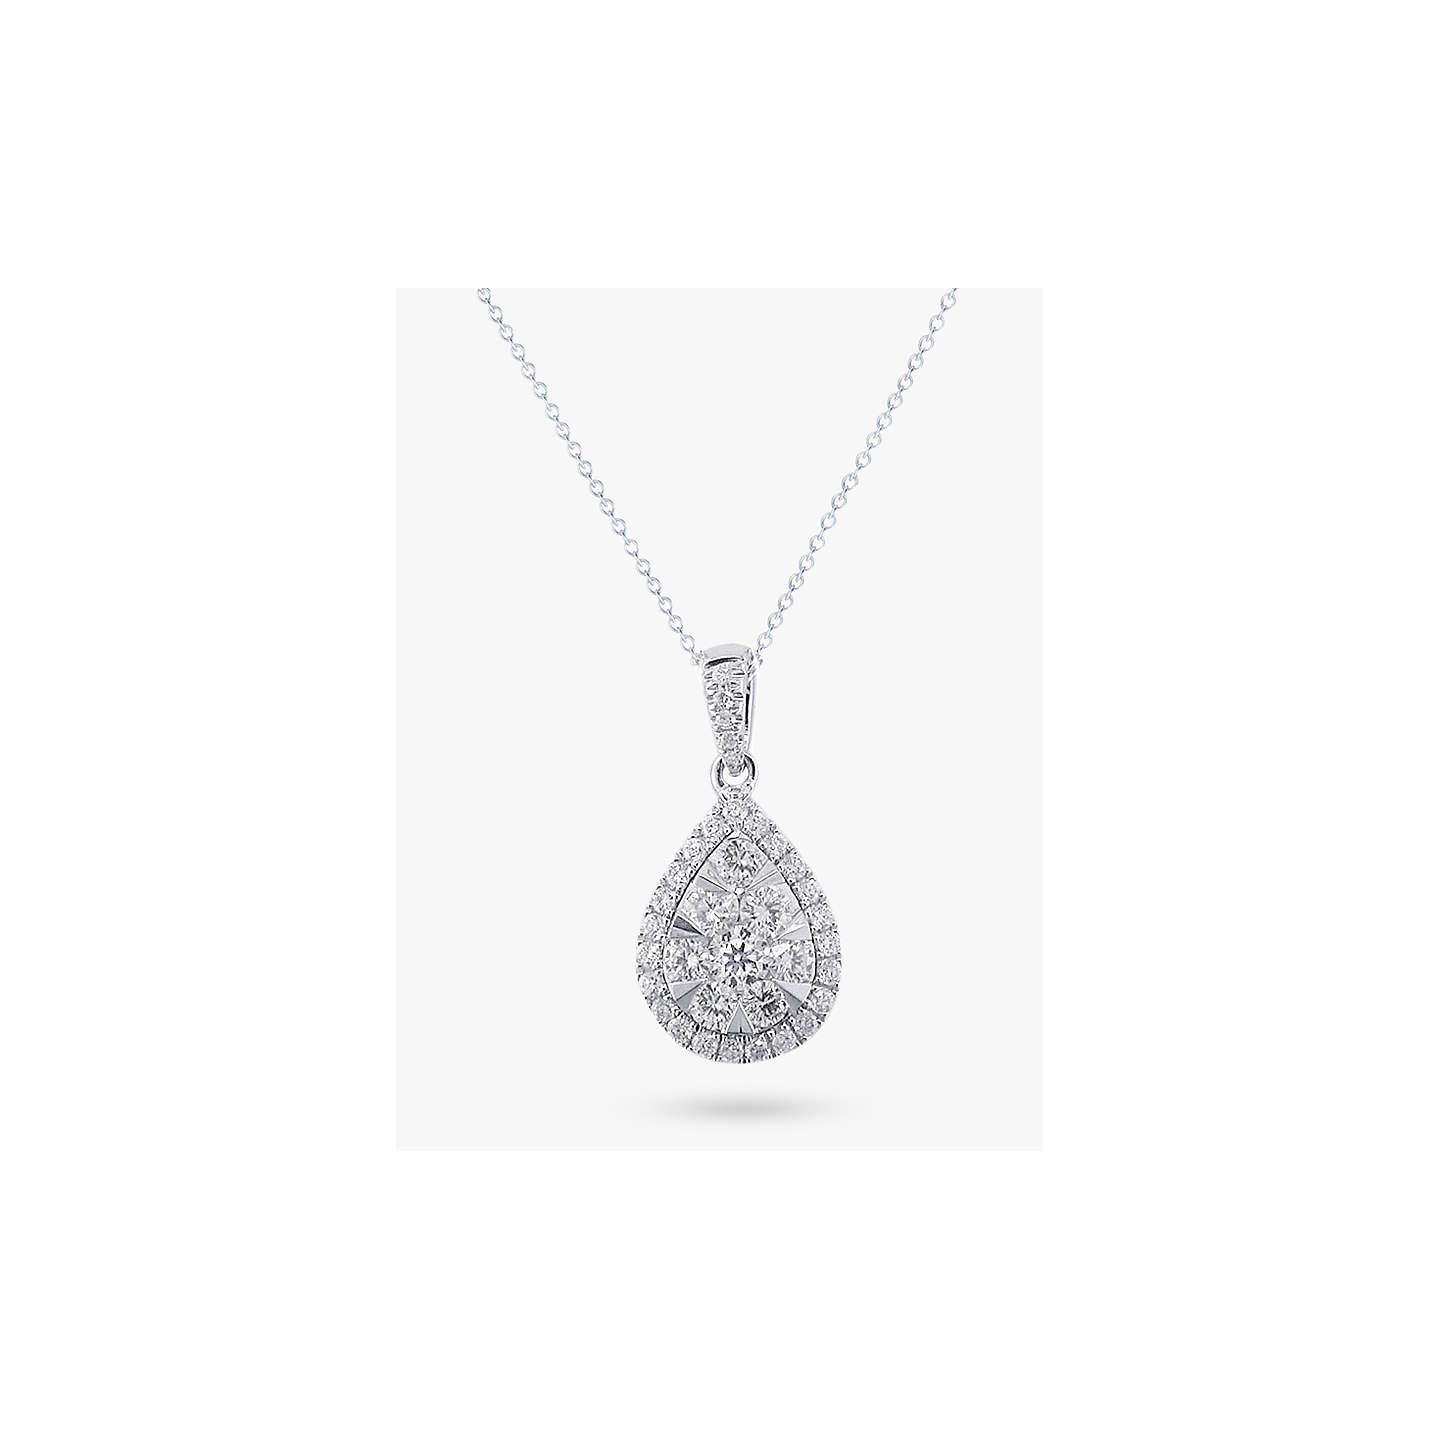 dc jewellery our claw necklaces pendant london pear shaped diamond hatton collections